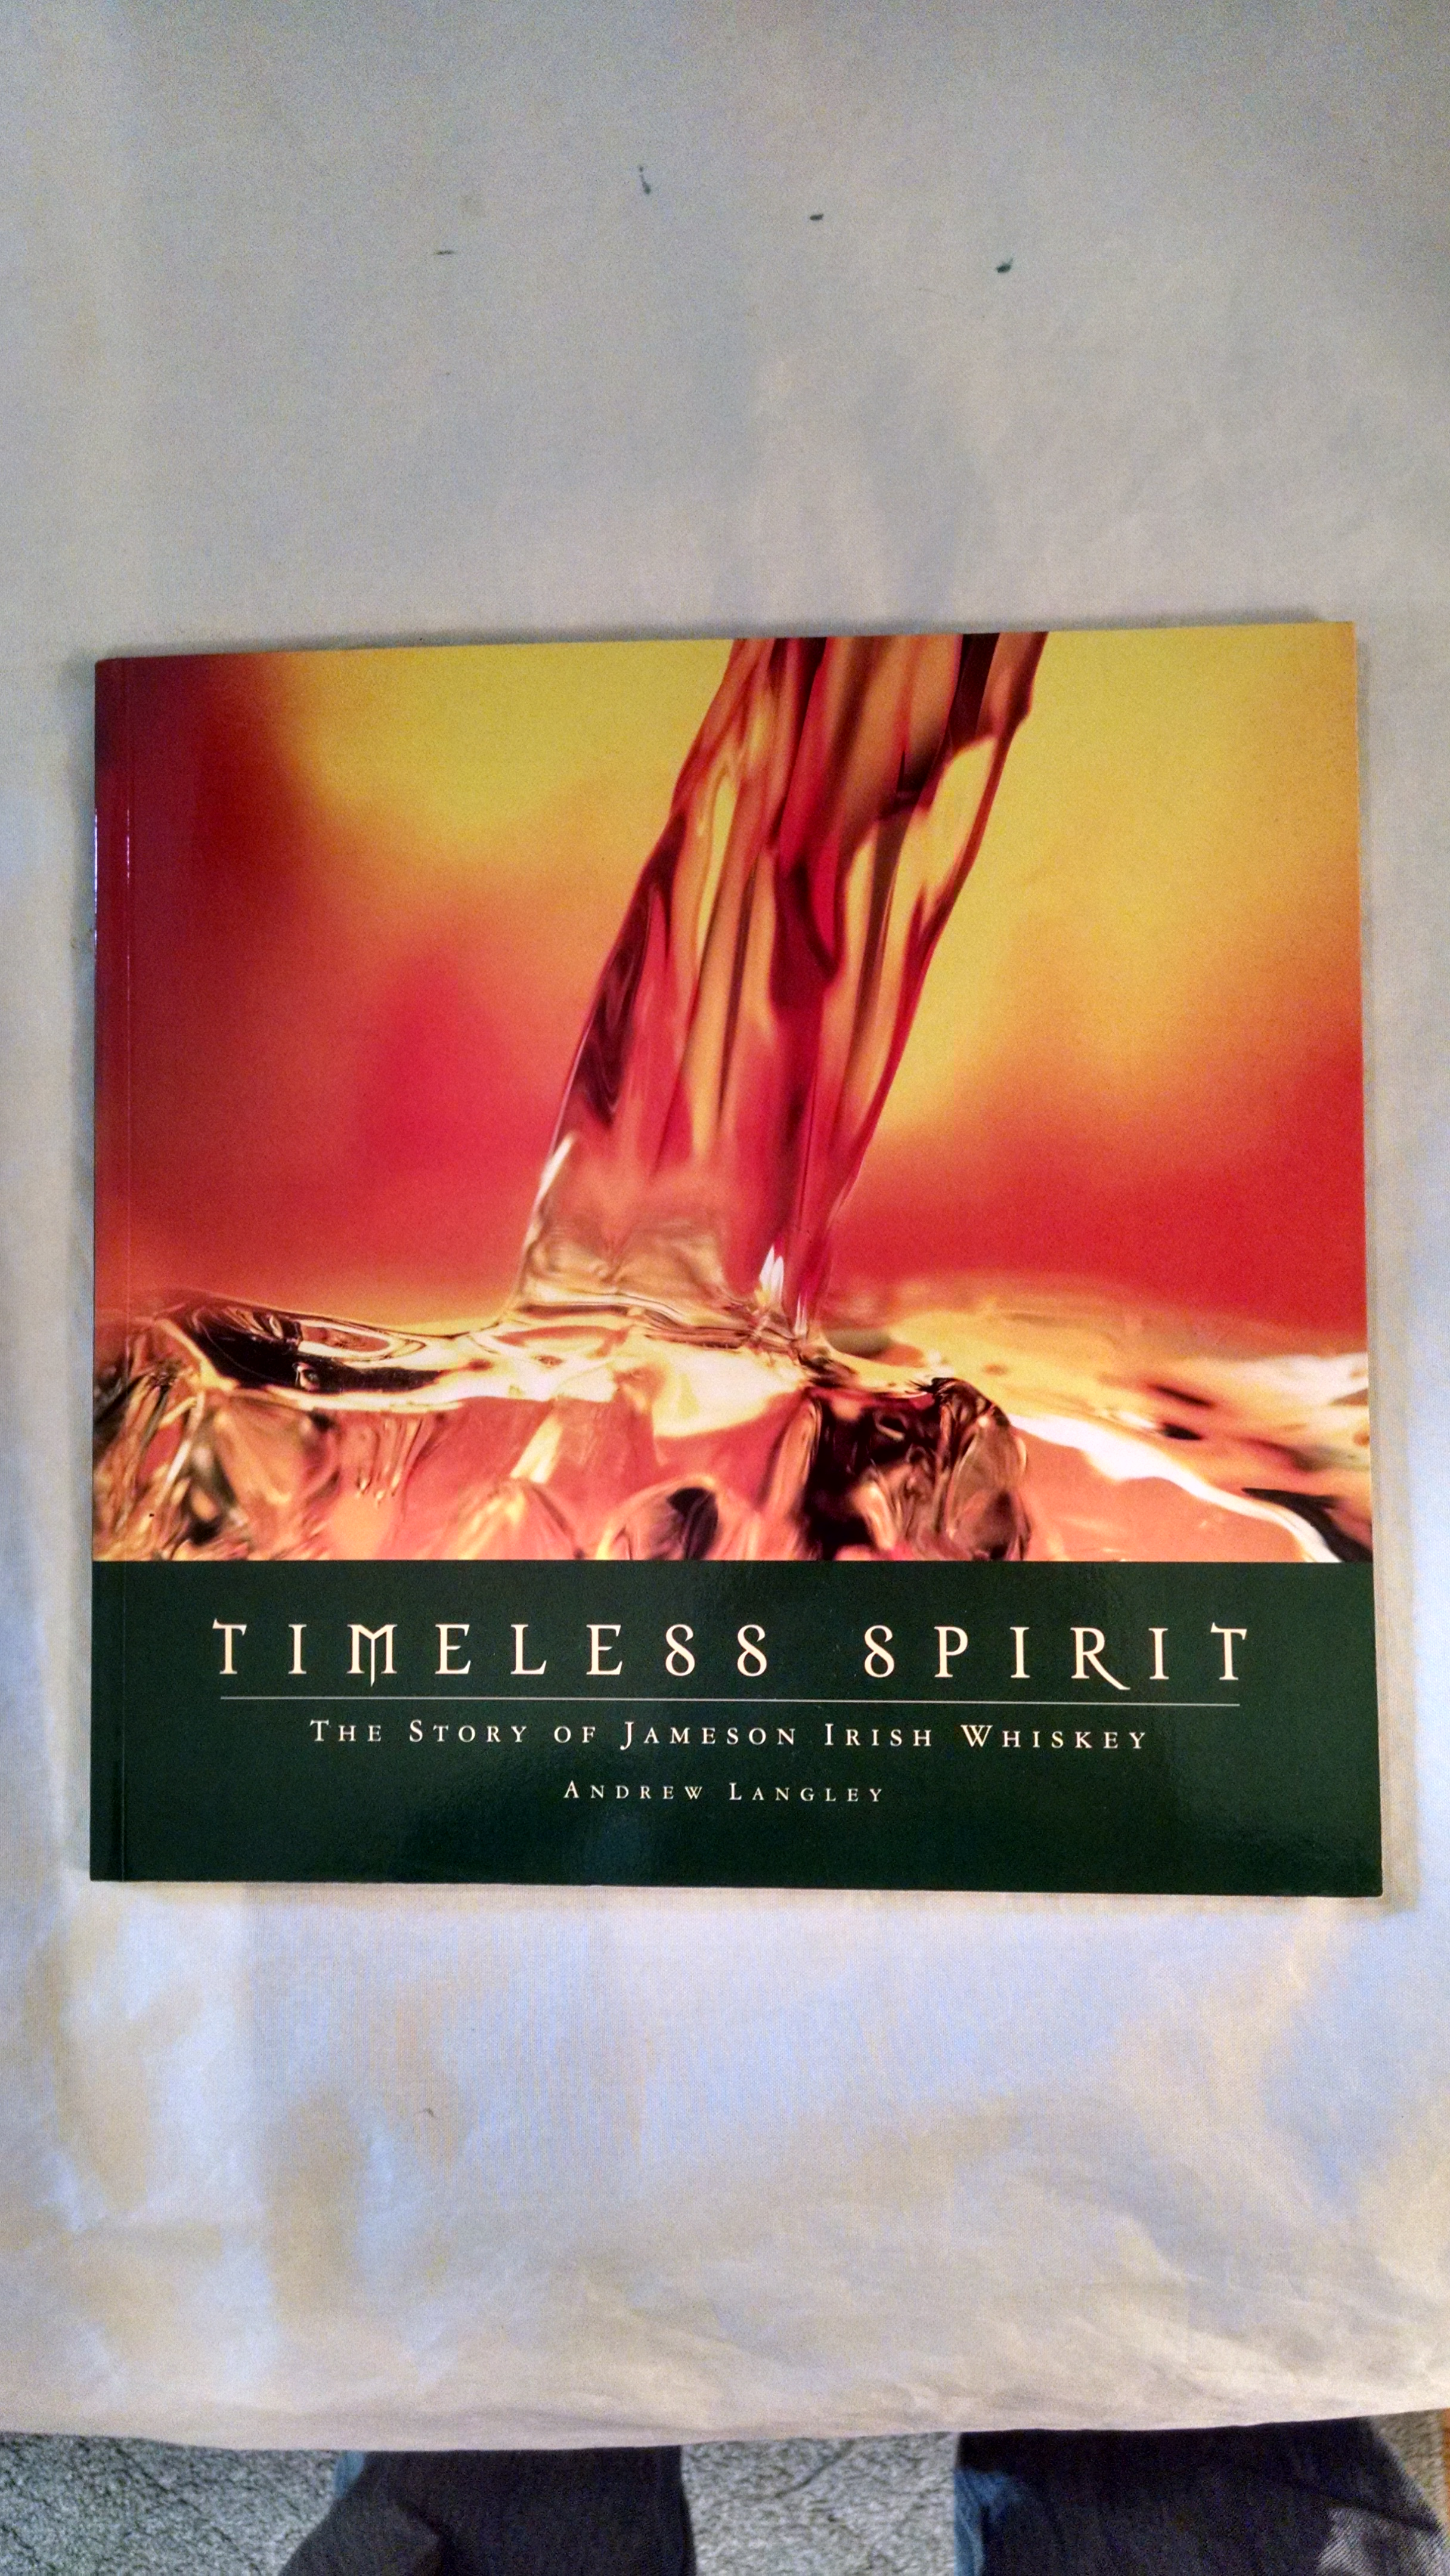 Image for TIMELESS SPIRIT THE STORY OF JAMESON IRISH WHISKEY